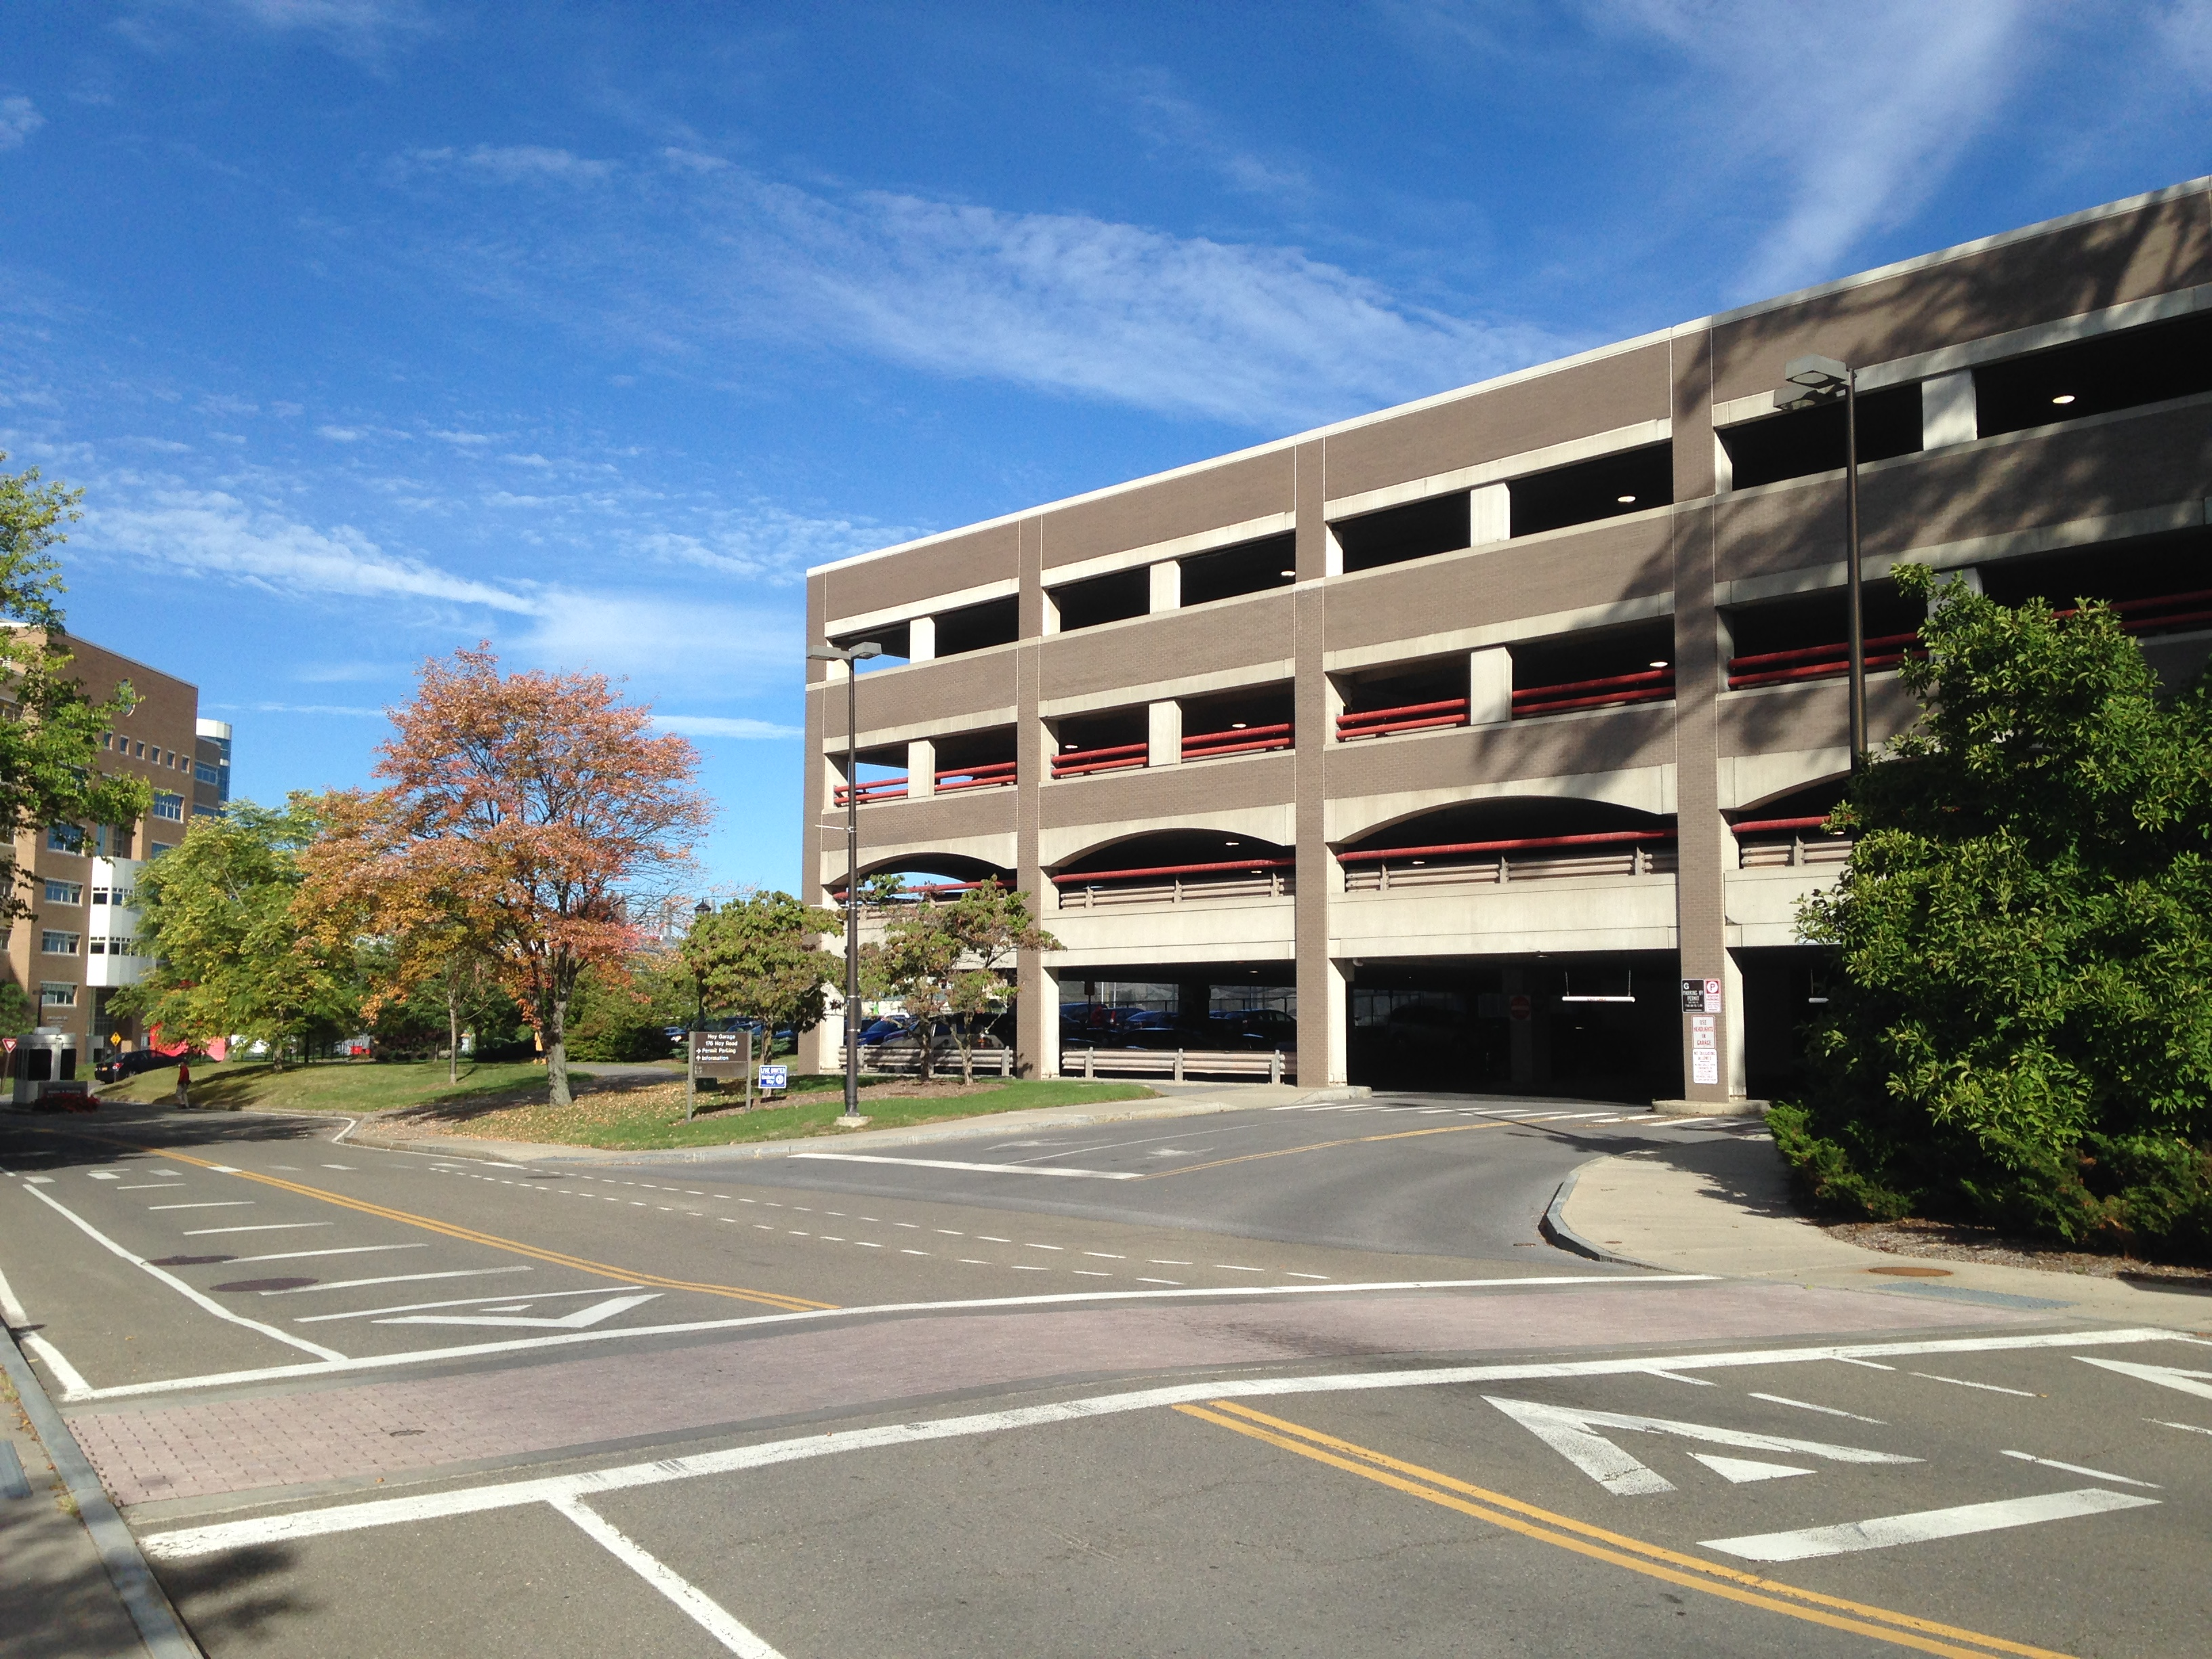 Hoy Field garage at Cornell University used Parksmart